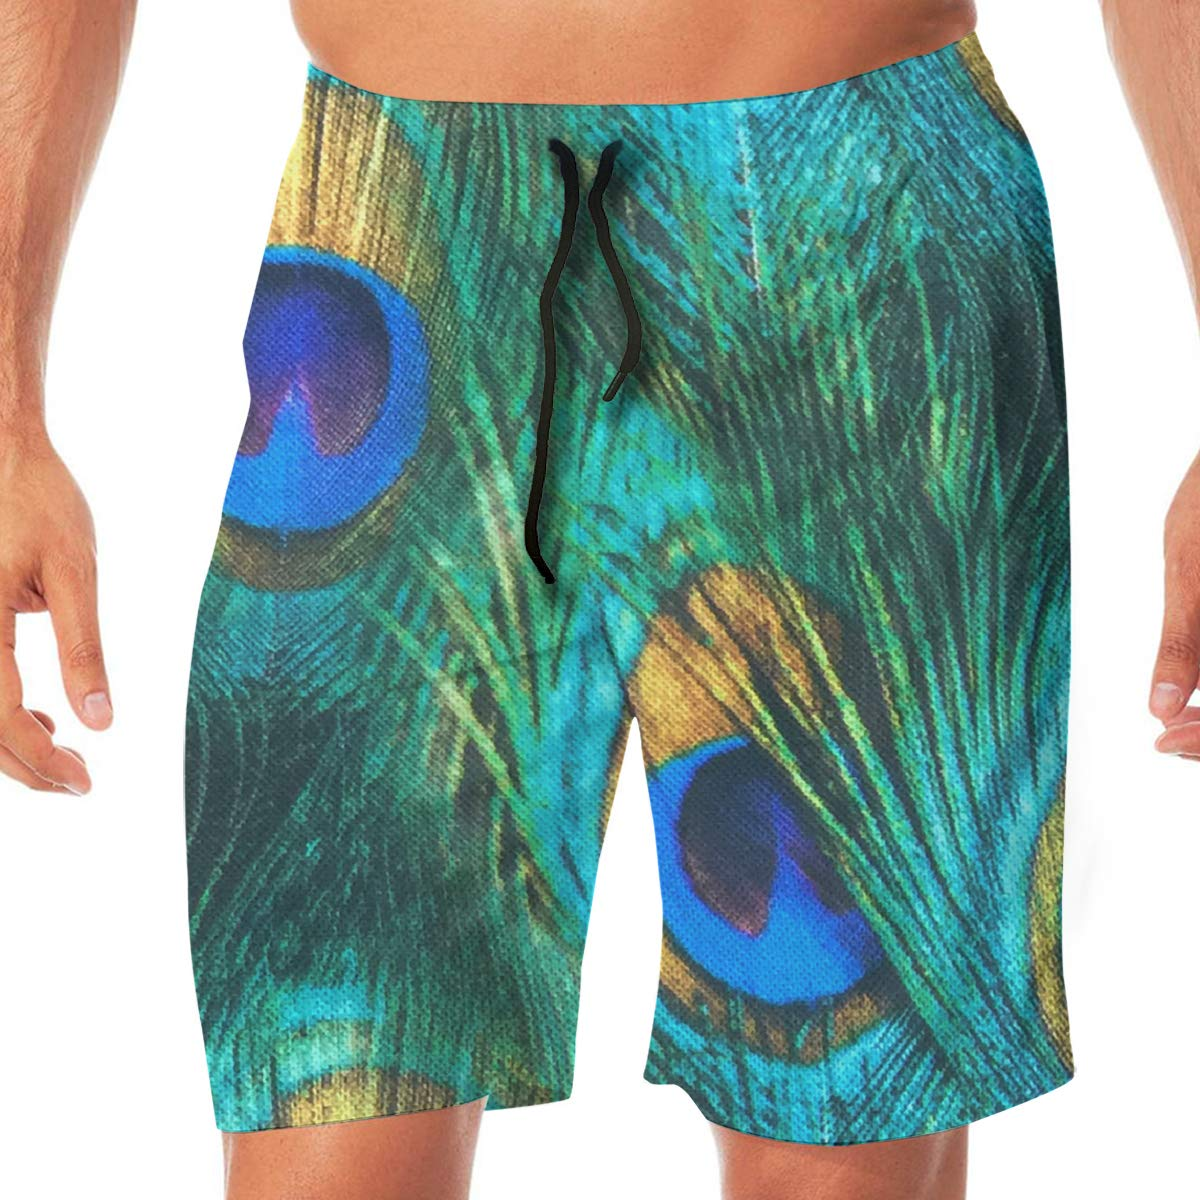 Peacock Feather Cotton Mens Classic Swim Beach Shorts with Pockets